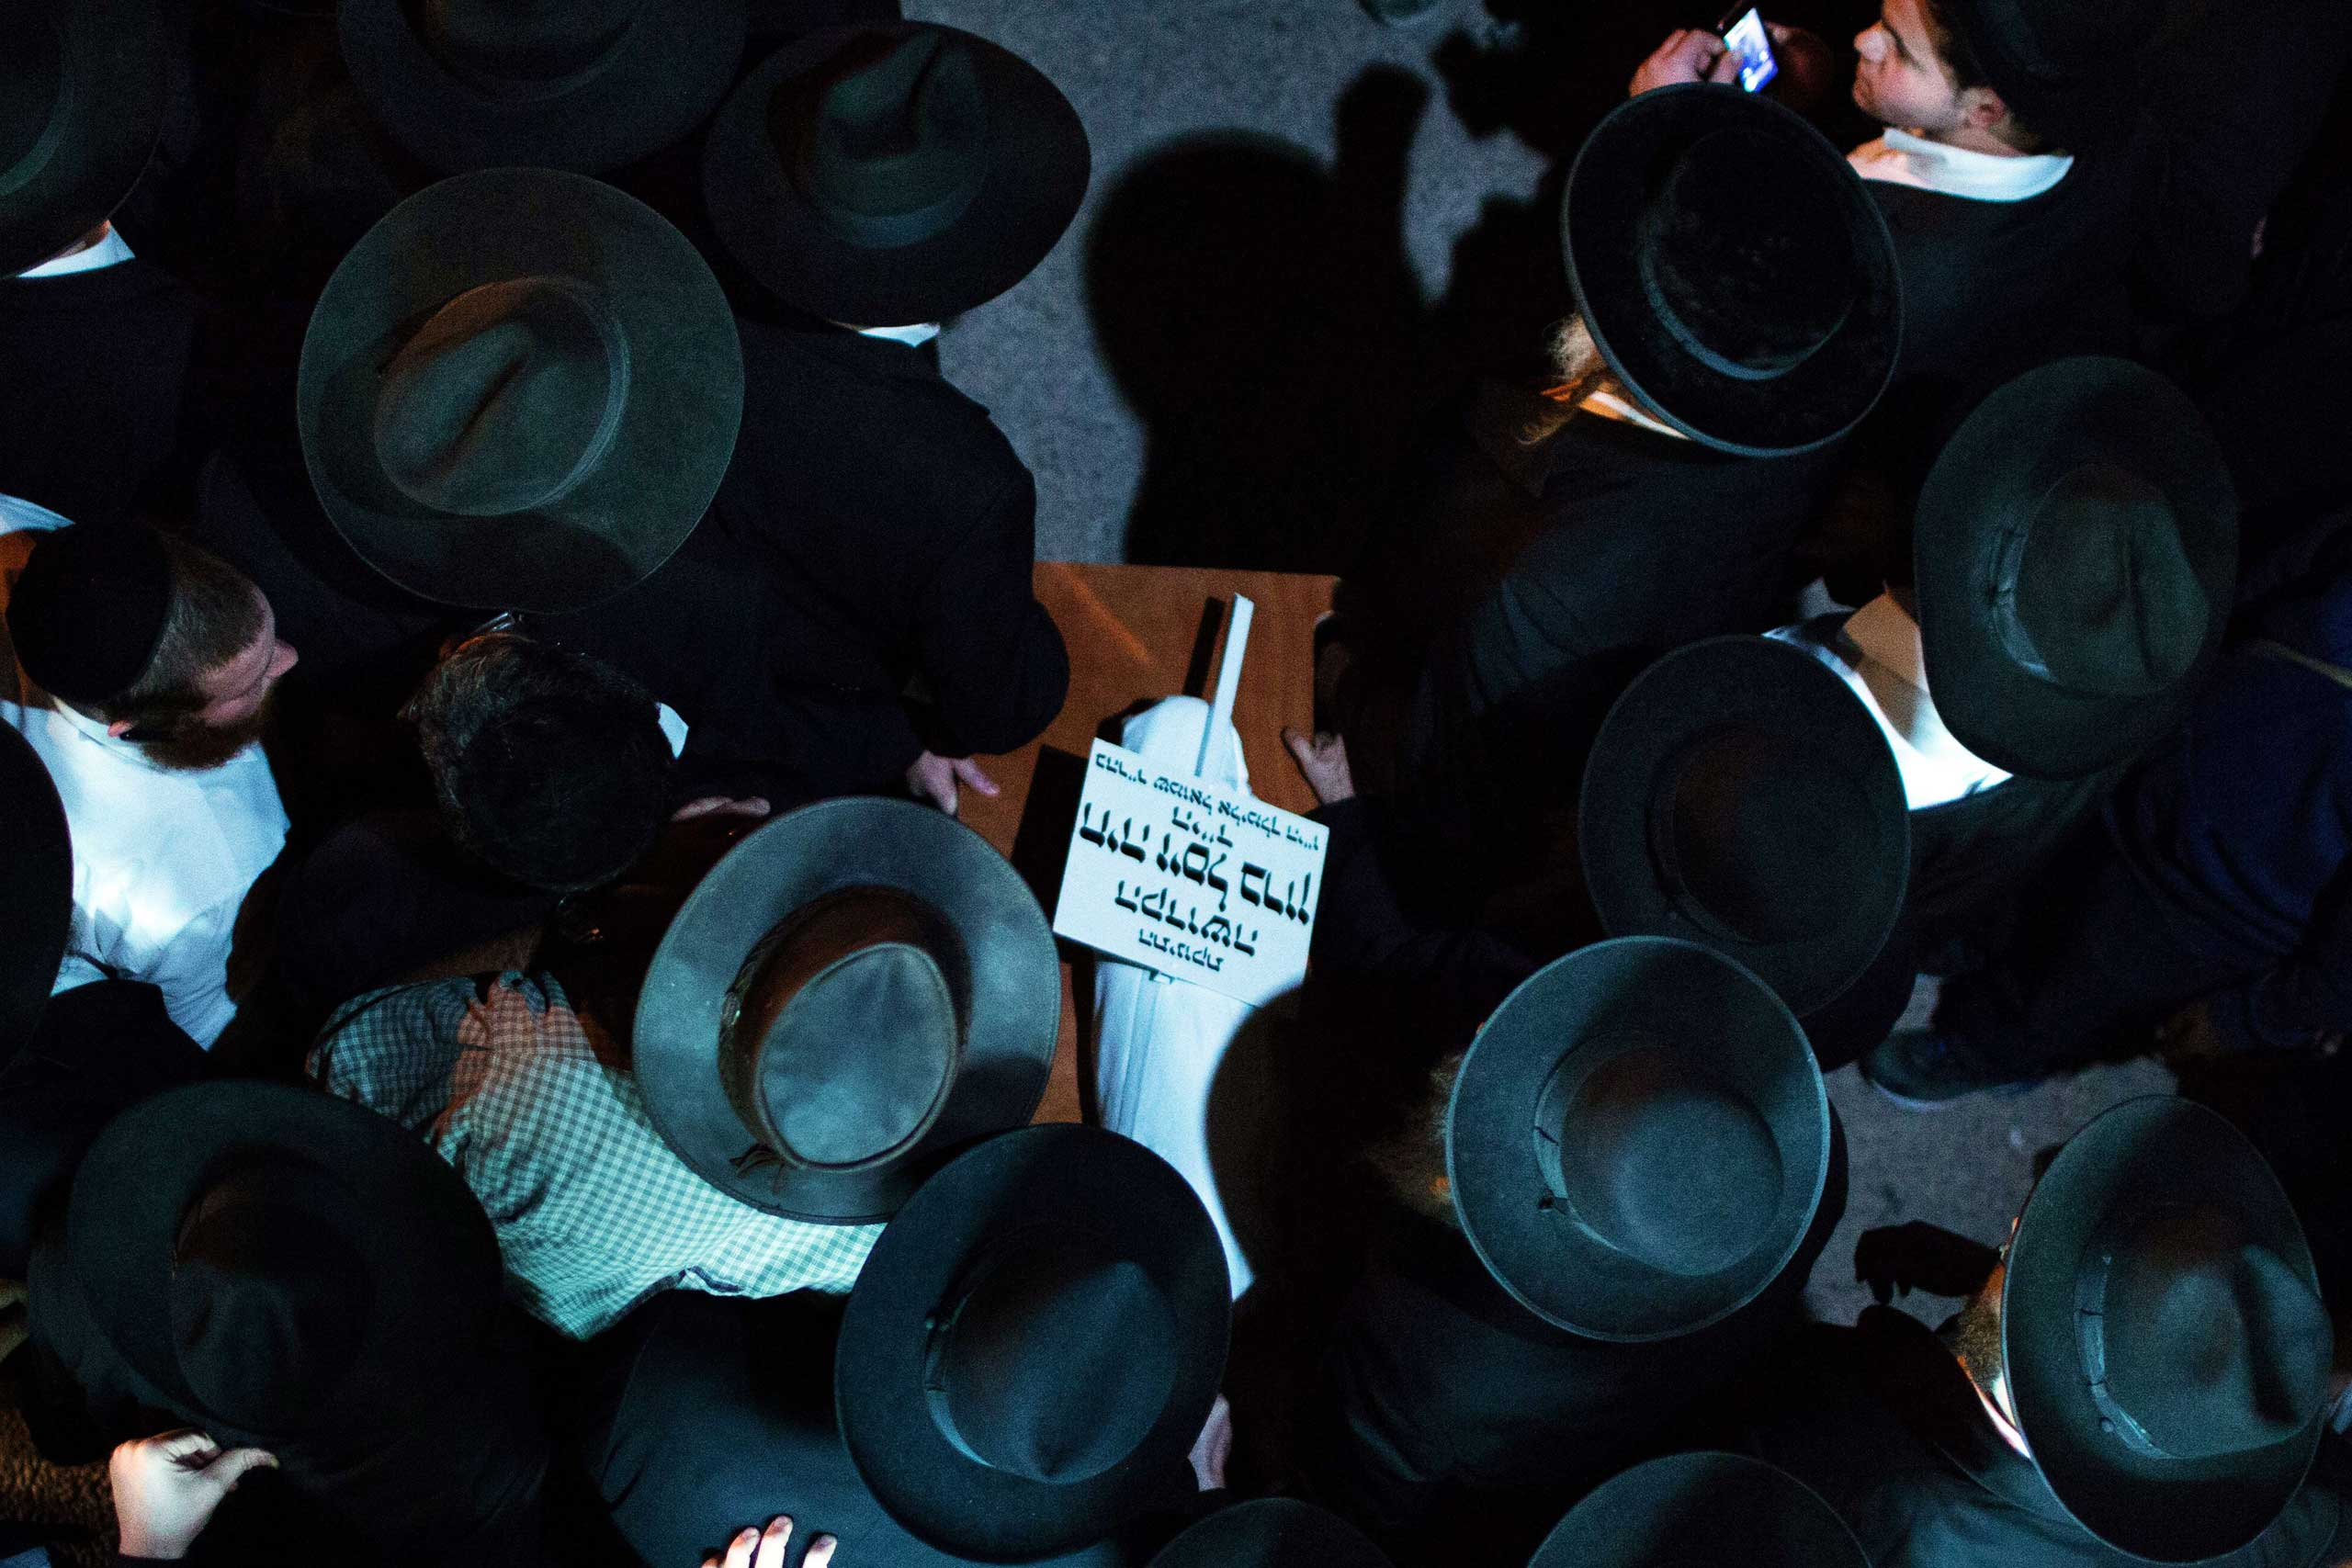 Oct. 23, 2014. Ultra-orthodox Jewish mourners carry the body of three-month-old baby Chaya Zissel Braun during her funeral in Jerusalem after she was killed in what Israeli police called a  hit-and-run terror attack  when a Palestinian driver rammed a group of pedestrians. Nine others were injured in the attack.